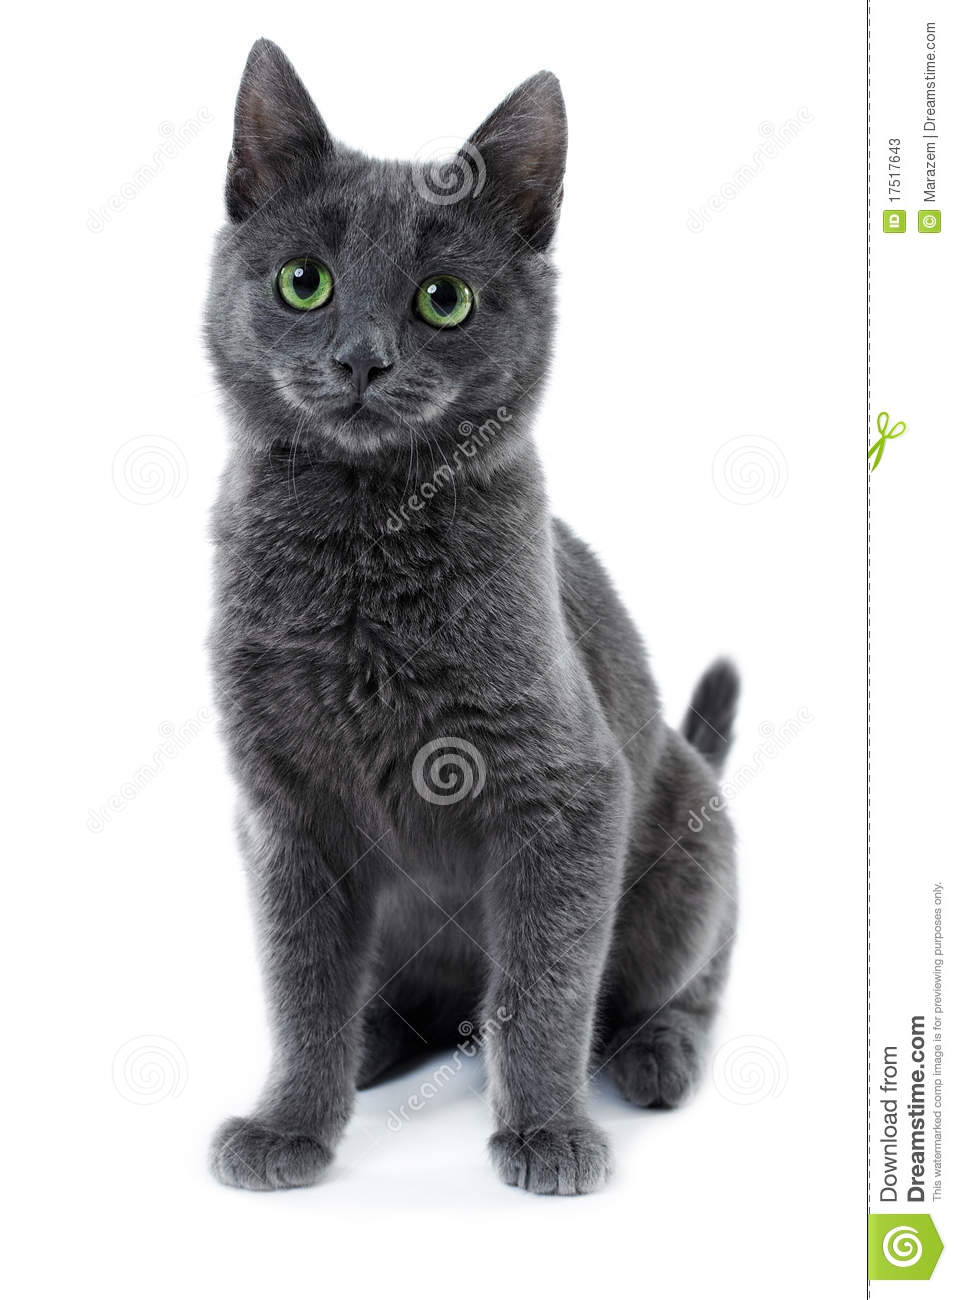 Russian Blue Kitten Stock Photos - Image: 17517643 White Kitten With Blue And Green Eyes